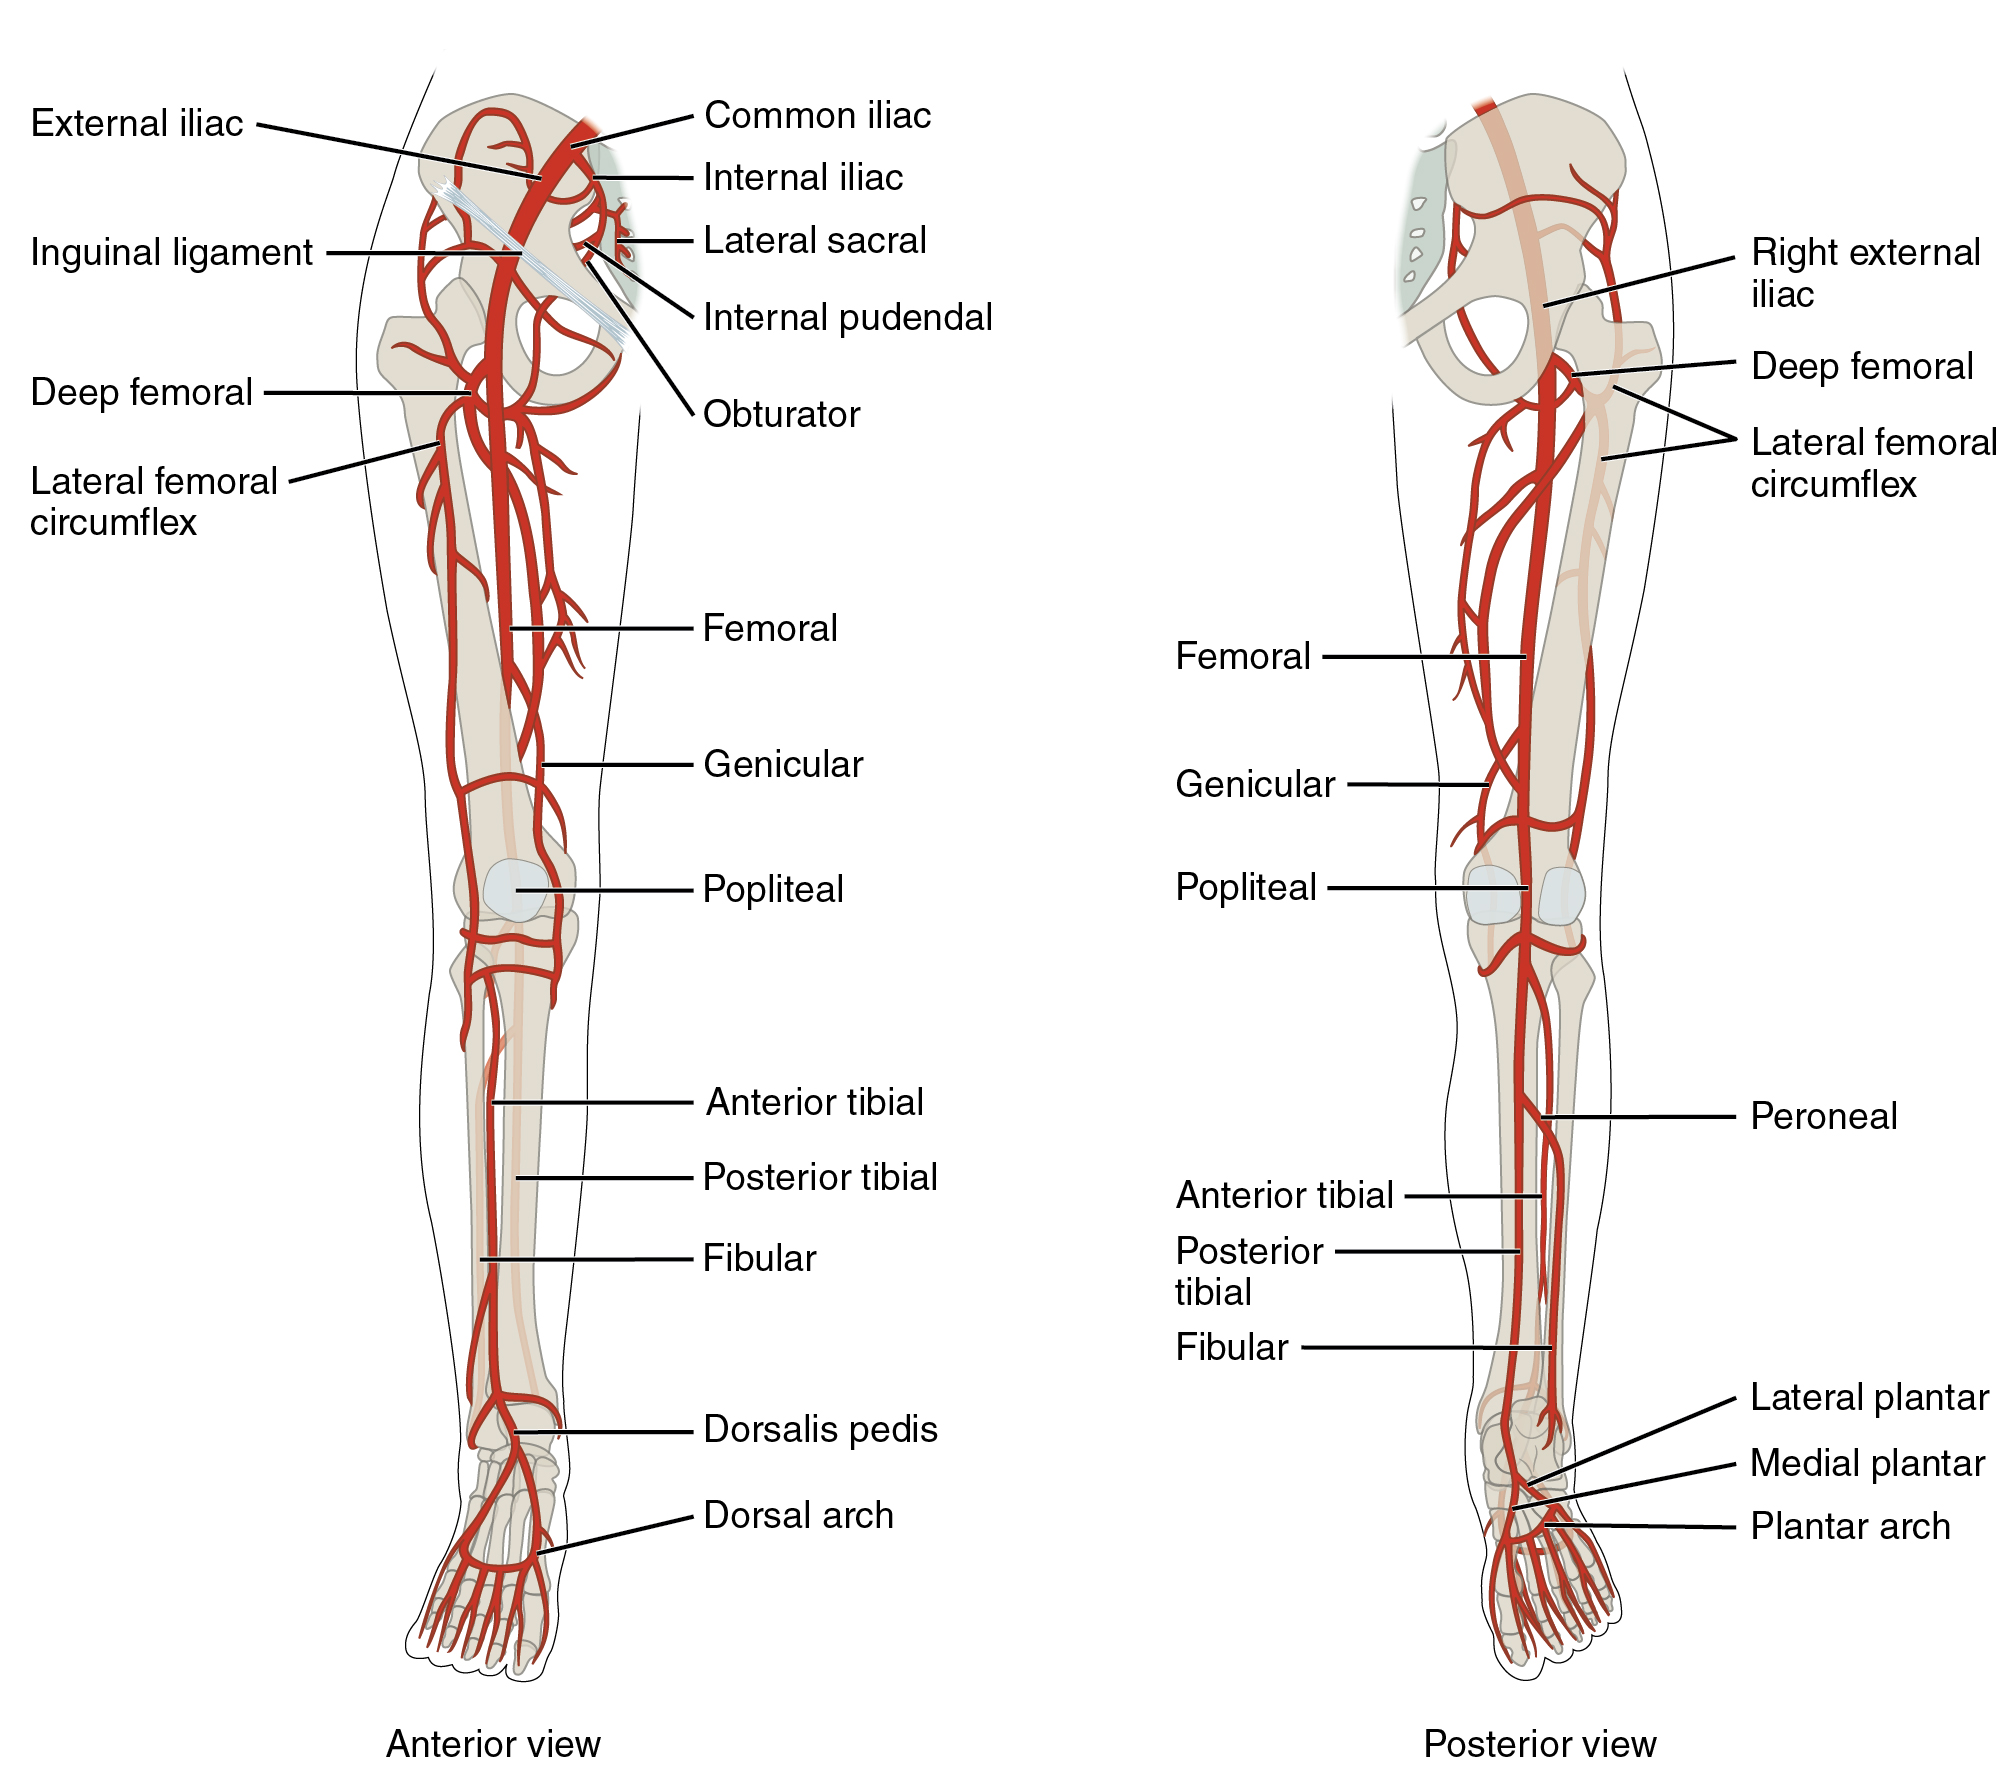 The left panel shows the anterior view of arteries in the legs, and the right panel shows the posterior view.